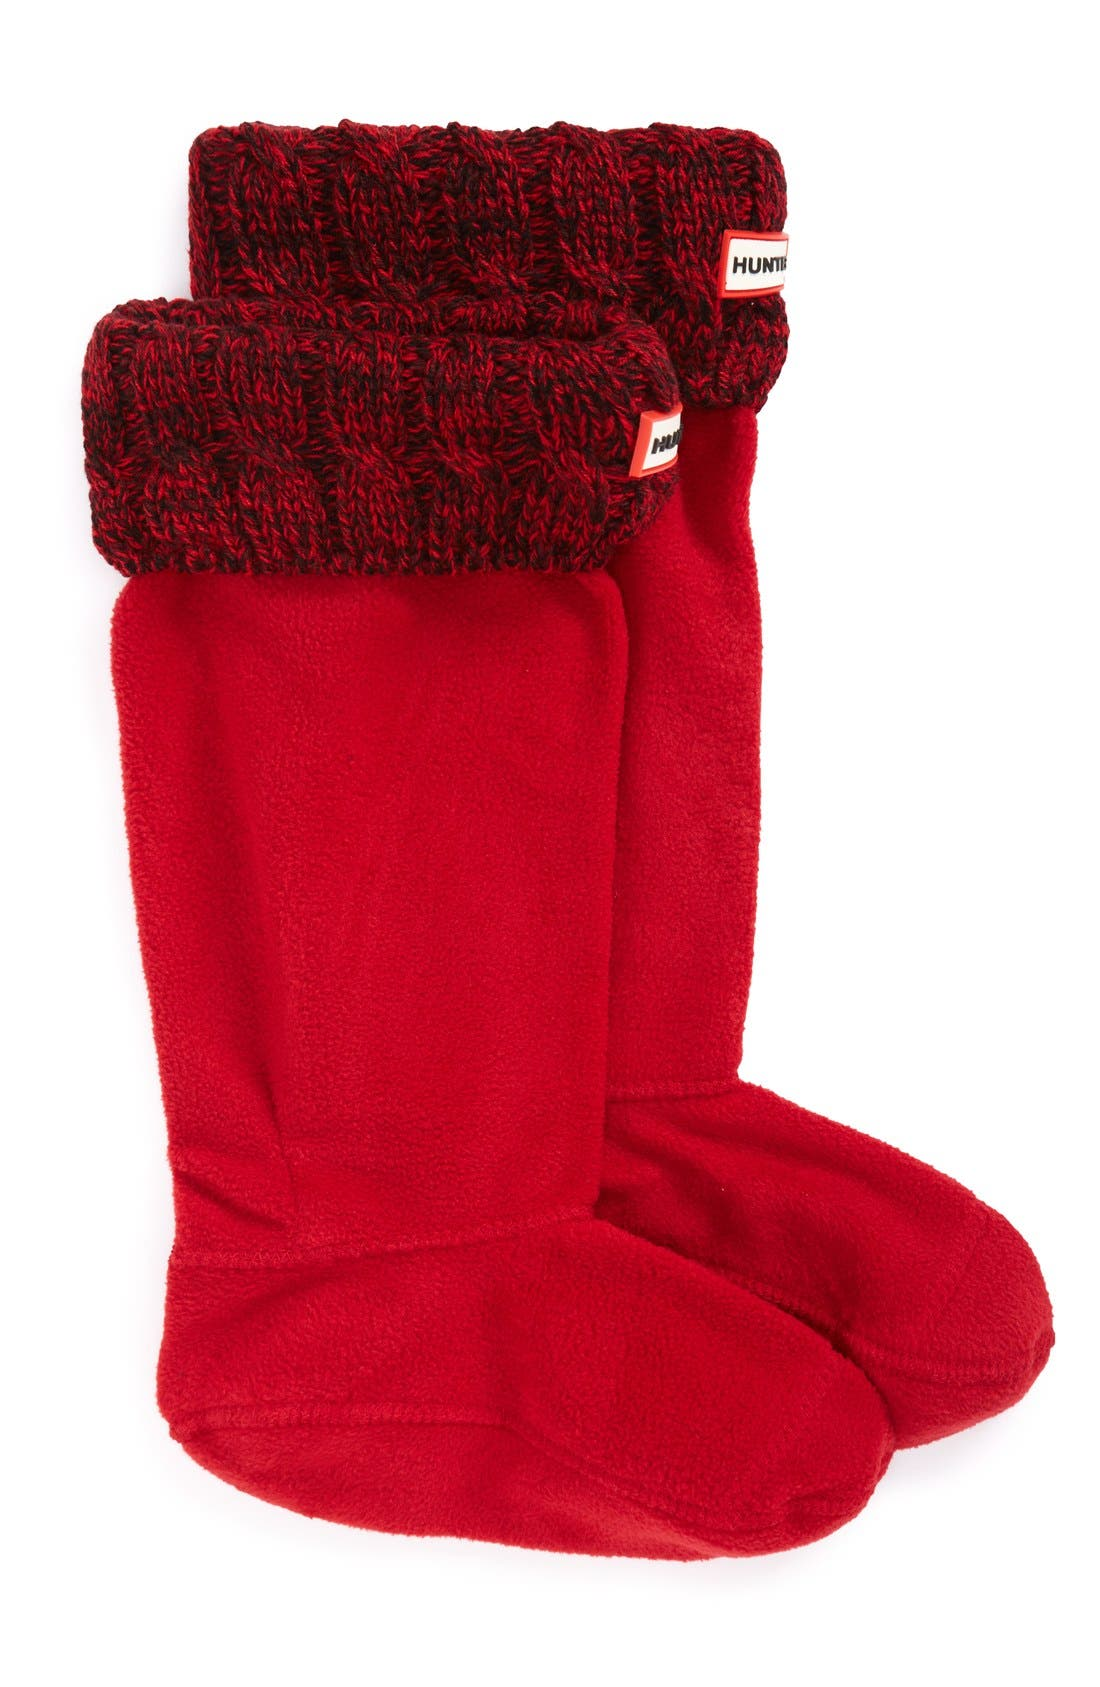 Original Tall Cable Knit Cuff Welly Boot Socks,                             Main thumbnail 10, color,